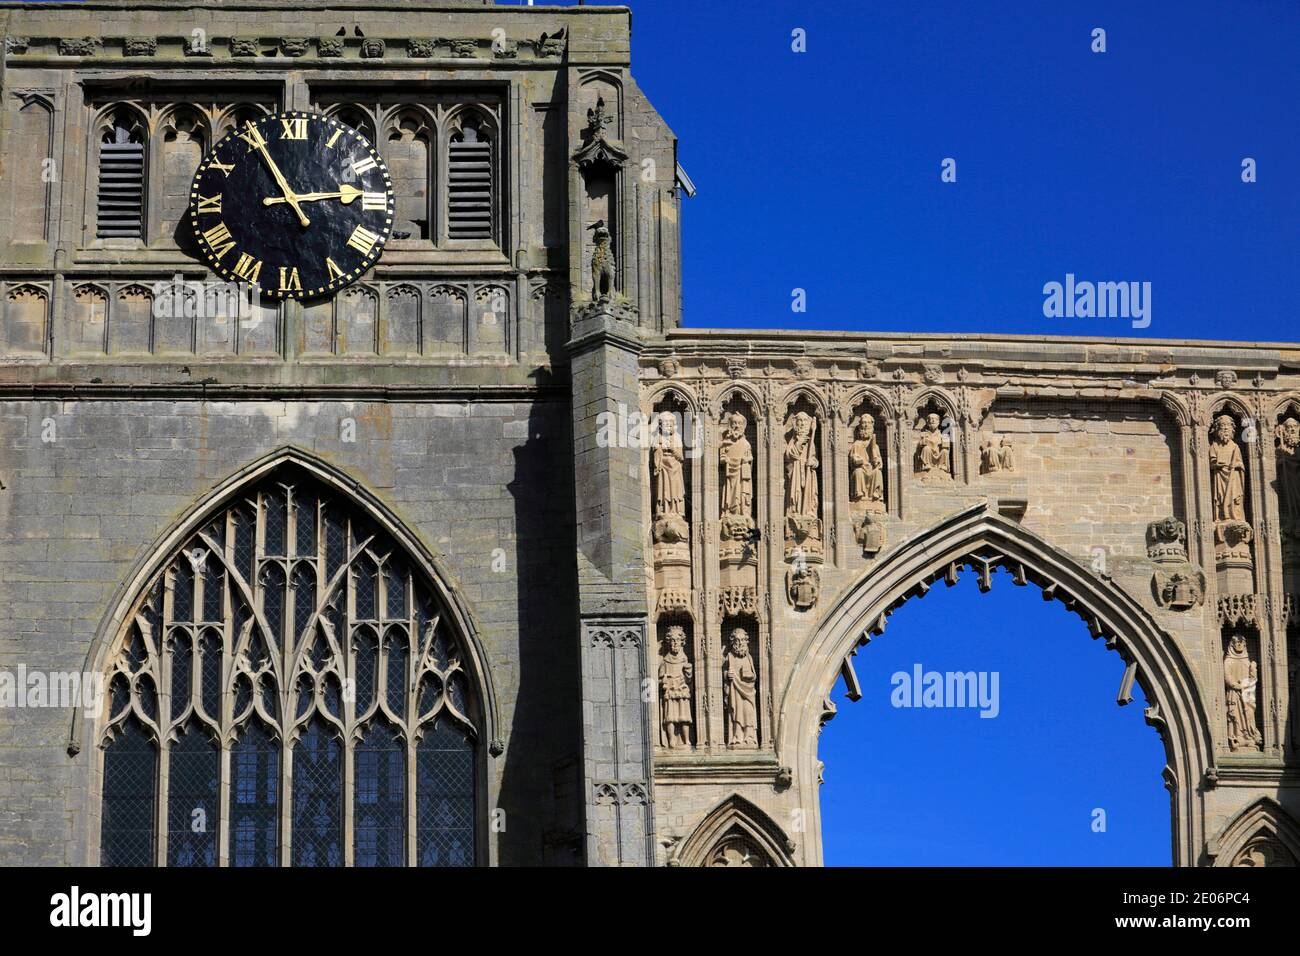 Summer view of Crowland Abbey; Crowland town; Lincolnshire; England; UK Stock Photo